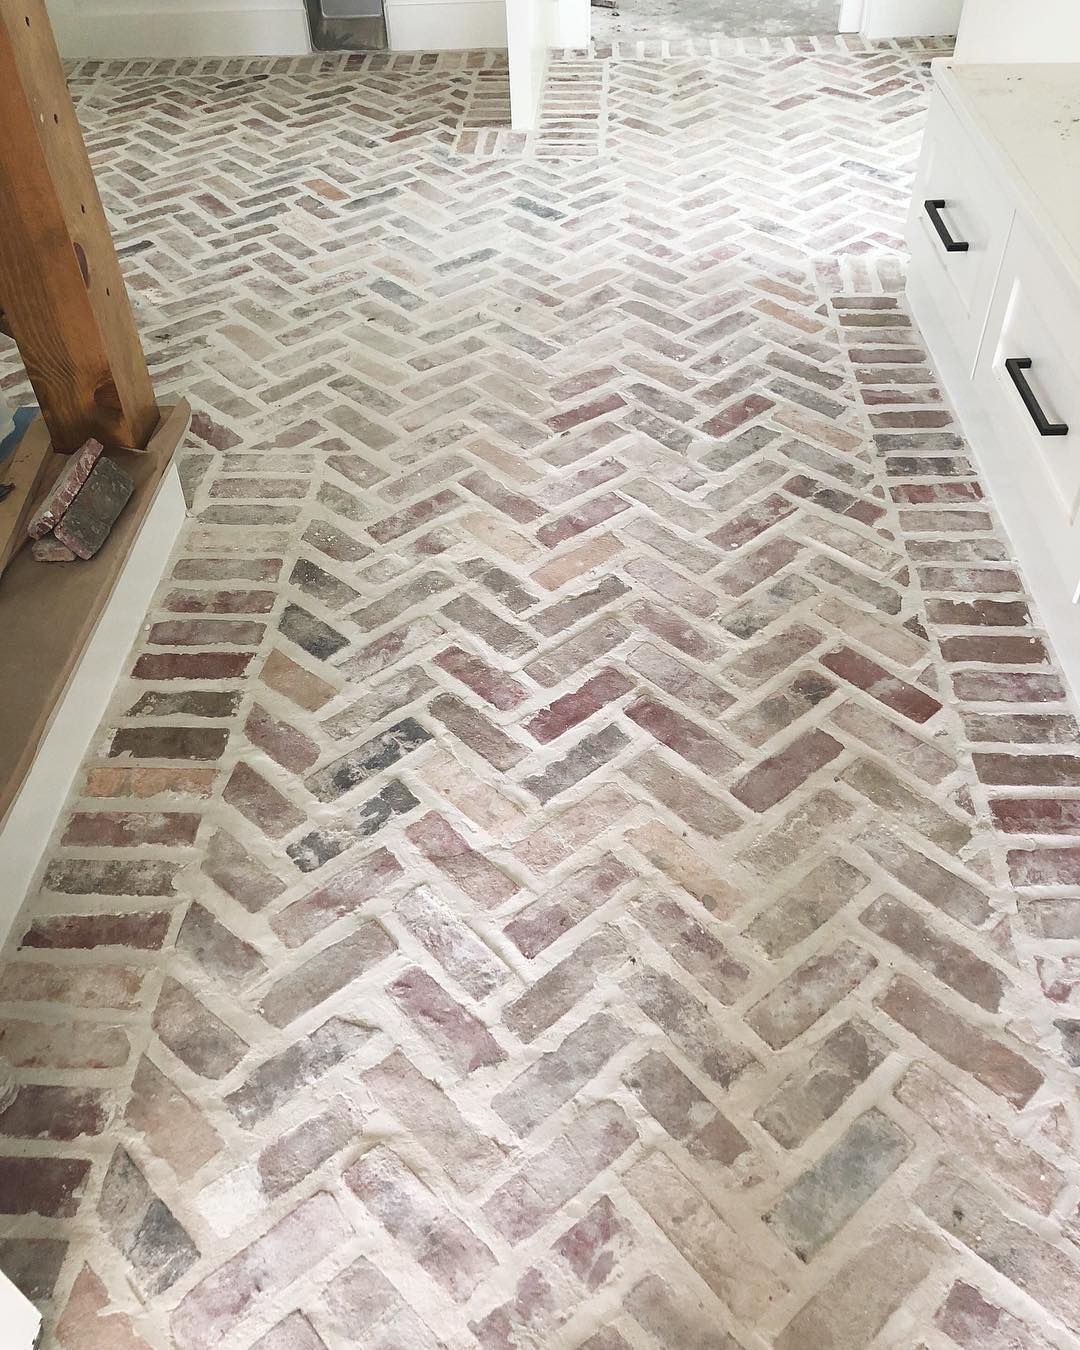 Pottery Brick Floor Wurm: Can You Marry Brick Floors? Because Our Mudroom Floors Are